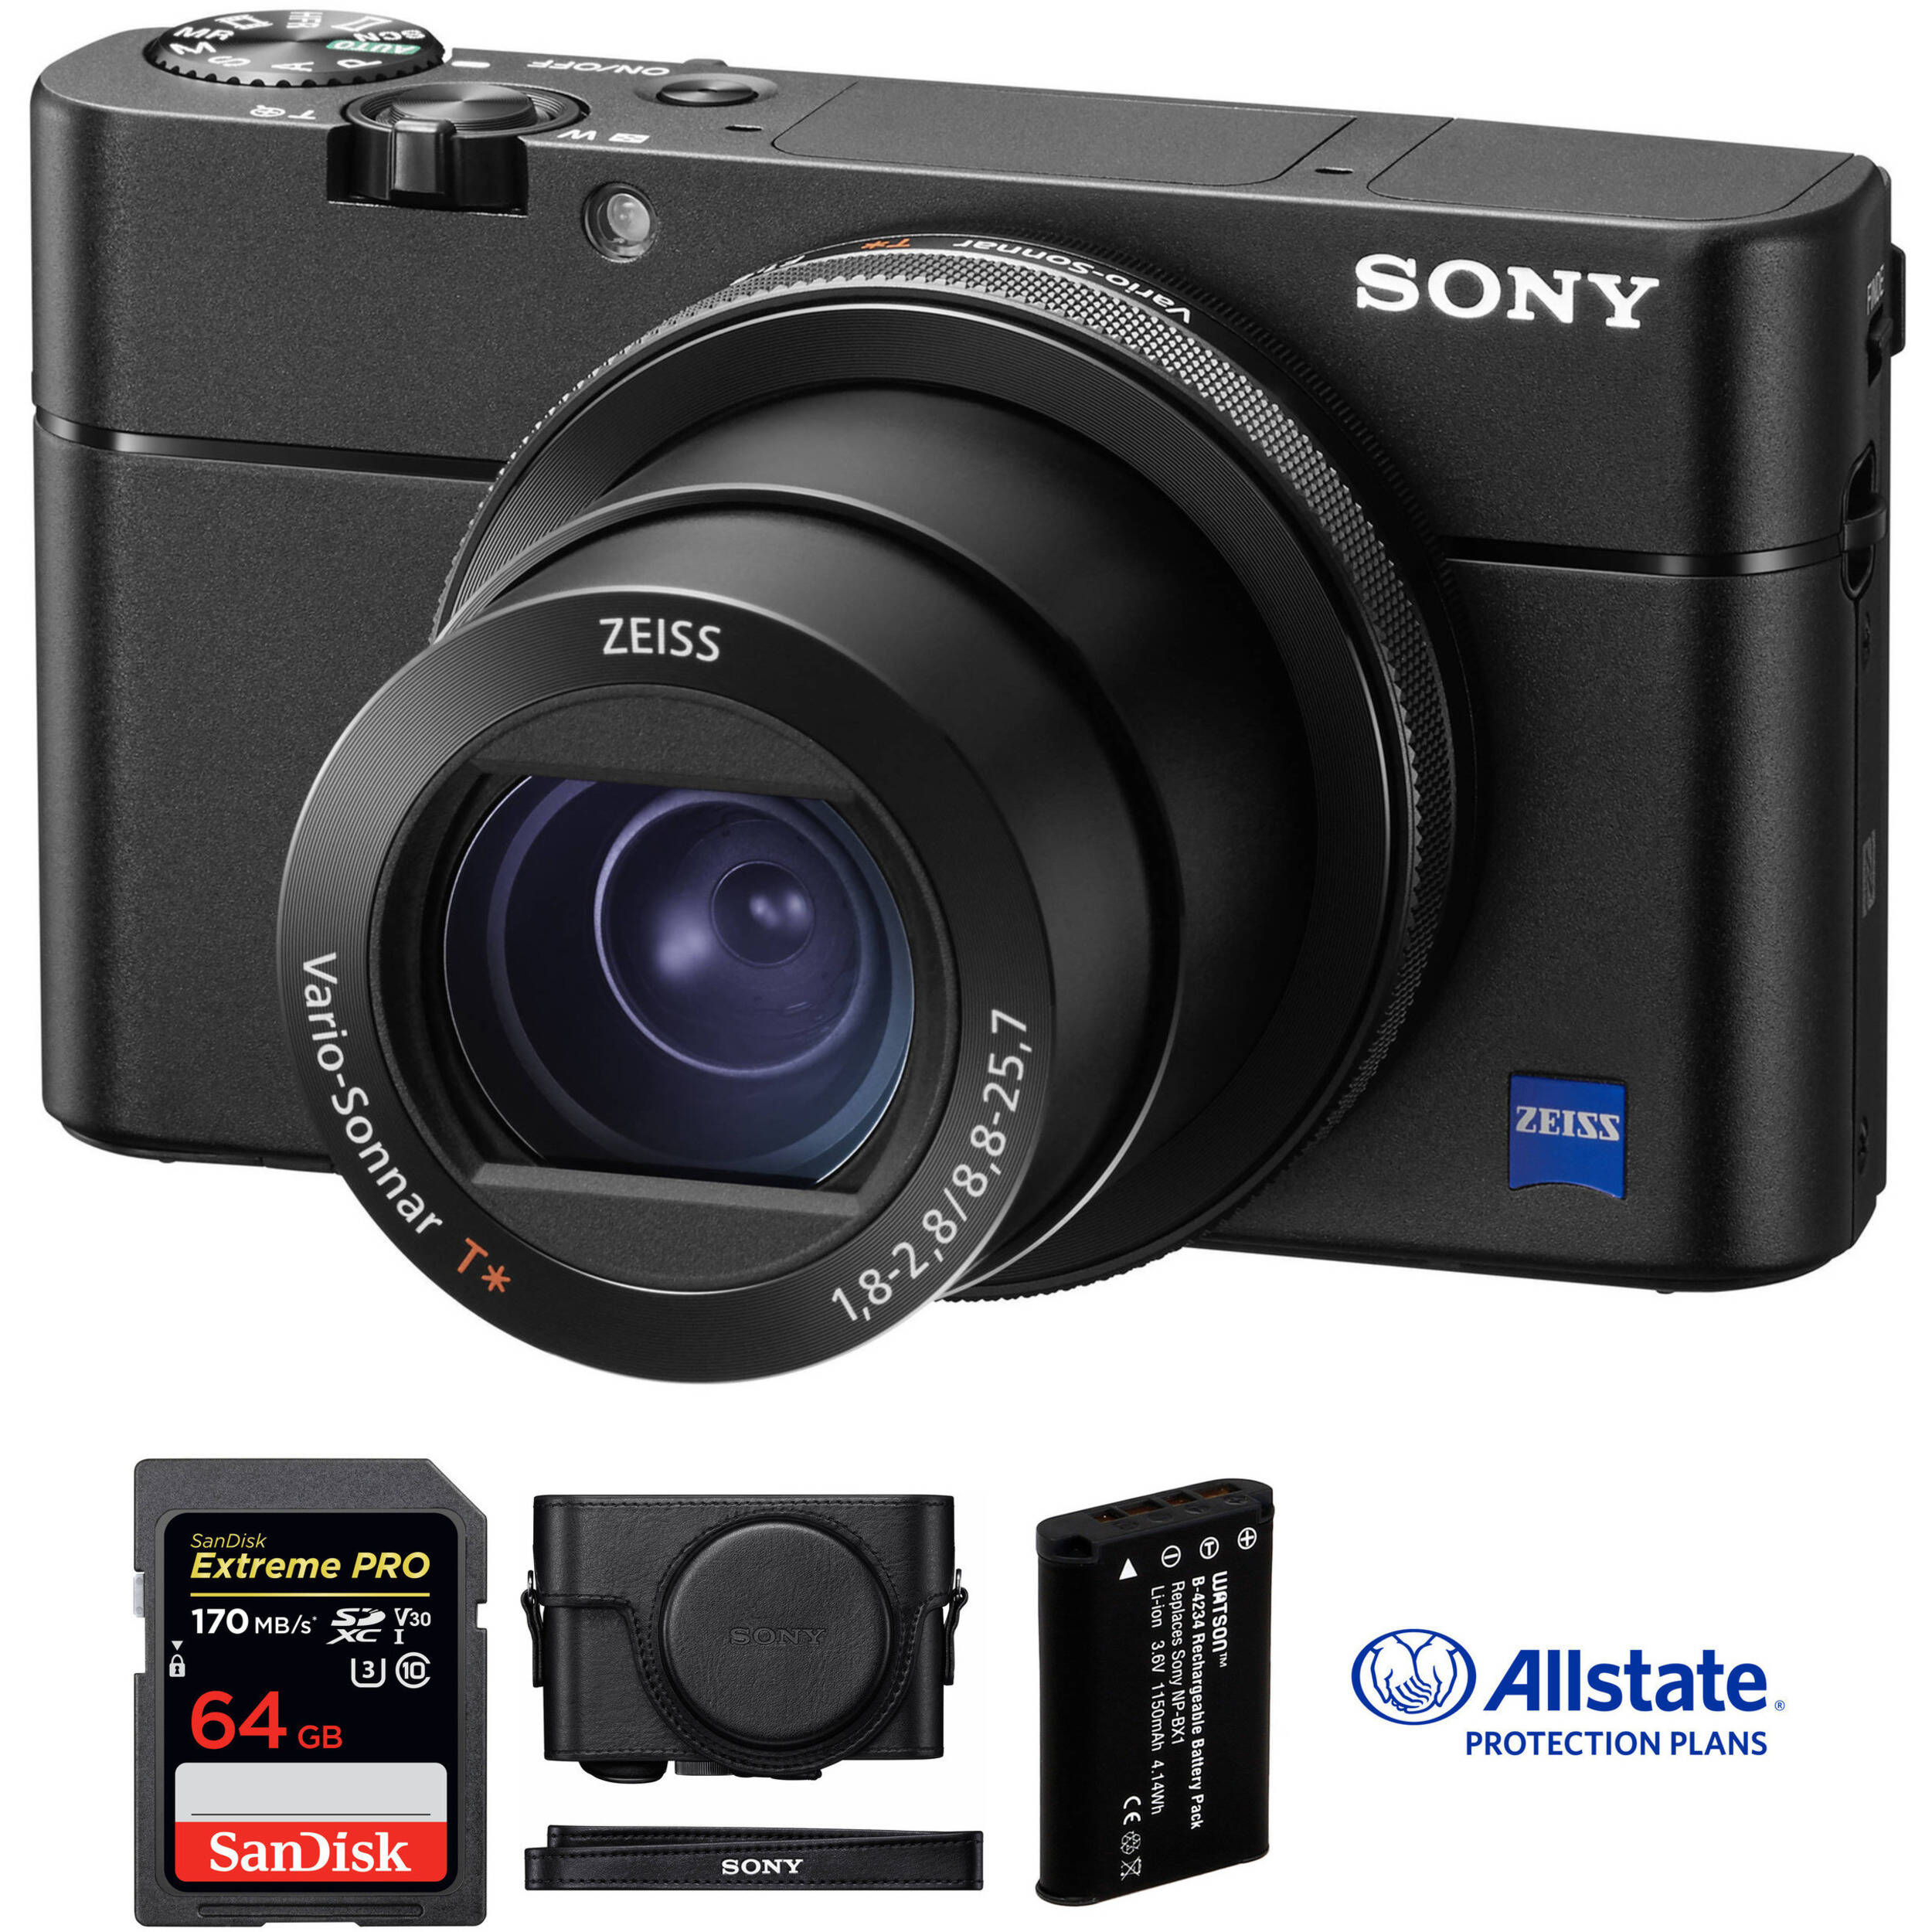 Sony Cyber-shot DSC-RX100 V Digital Camera Deluxe Kit